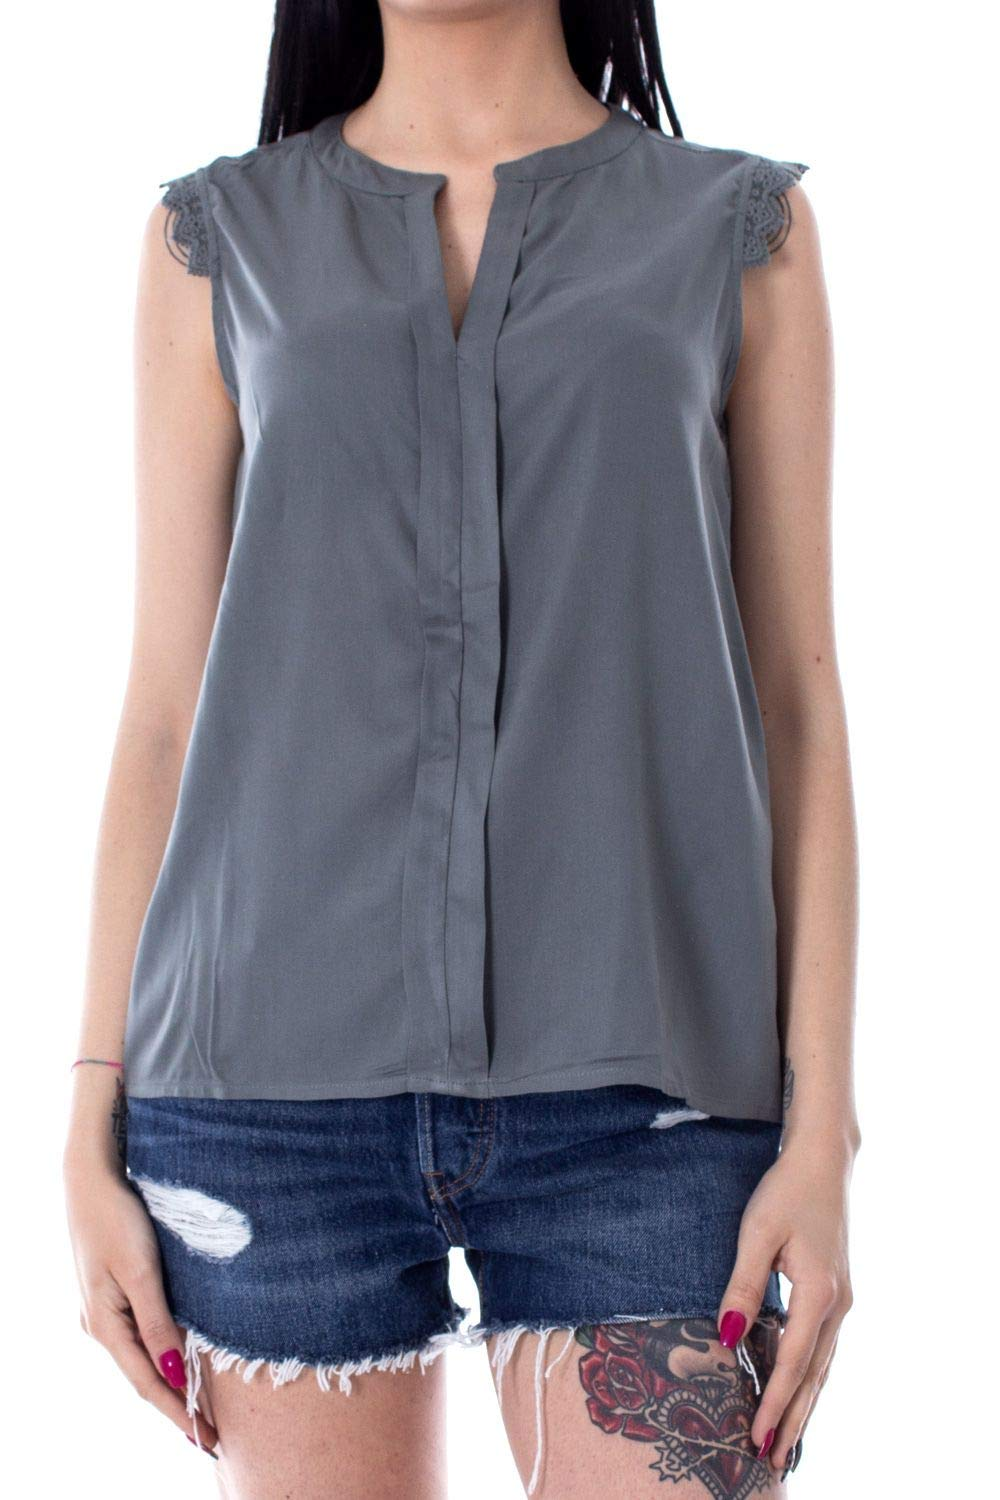 Only Women's 15157656GREY Grey Viscose Tank Top